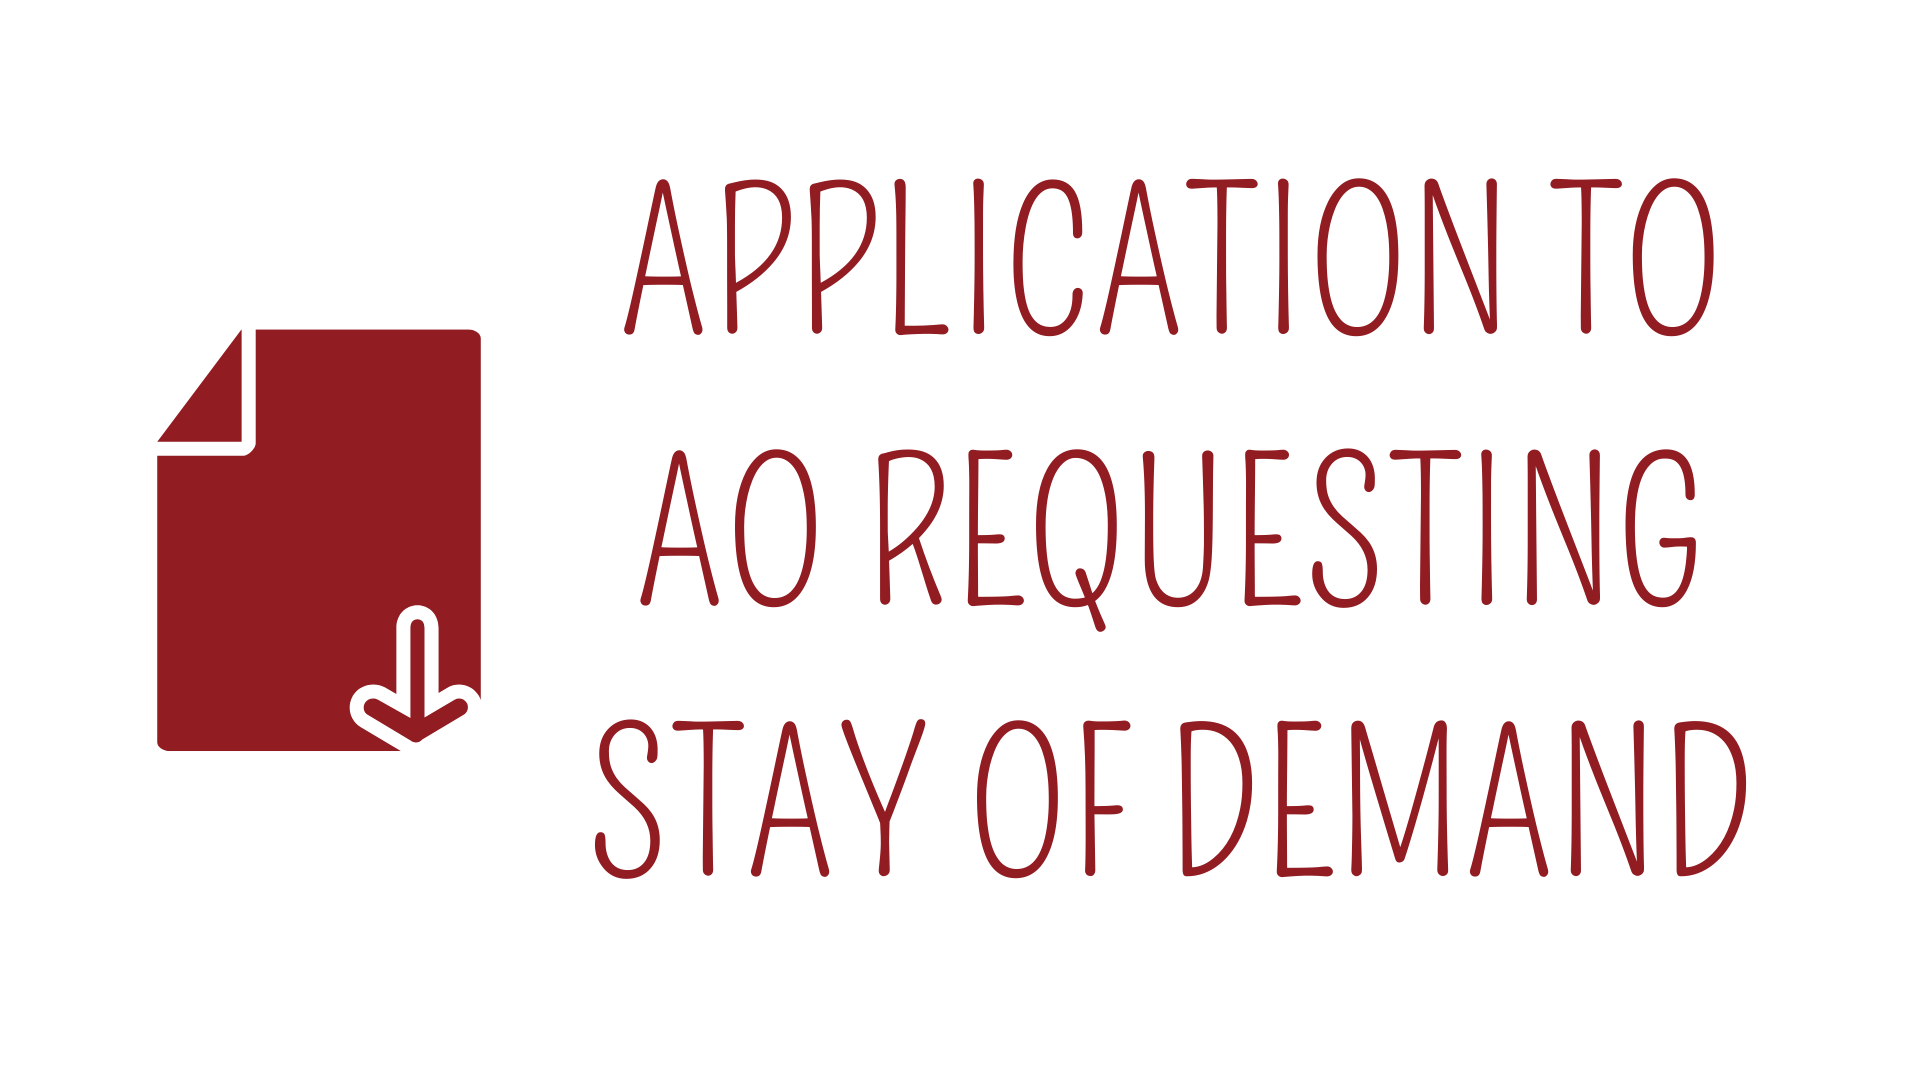 APPLICATION TO AO REQUESTING STAY OF DEMAND